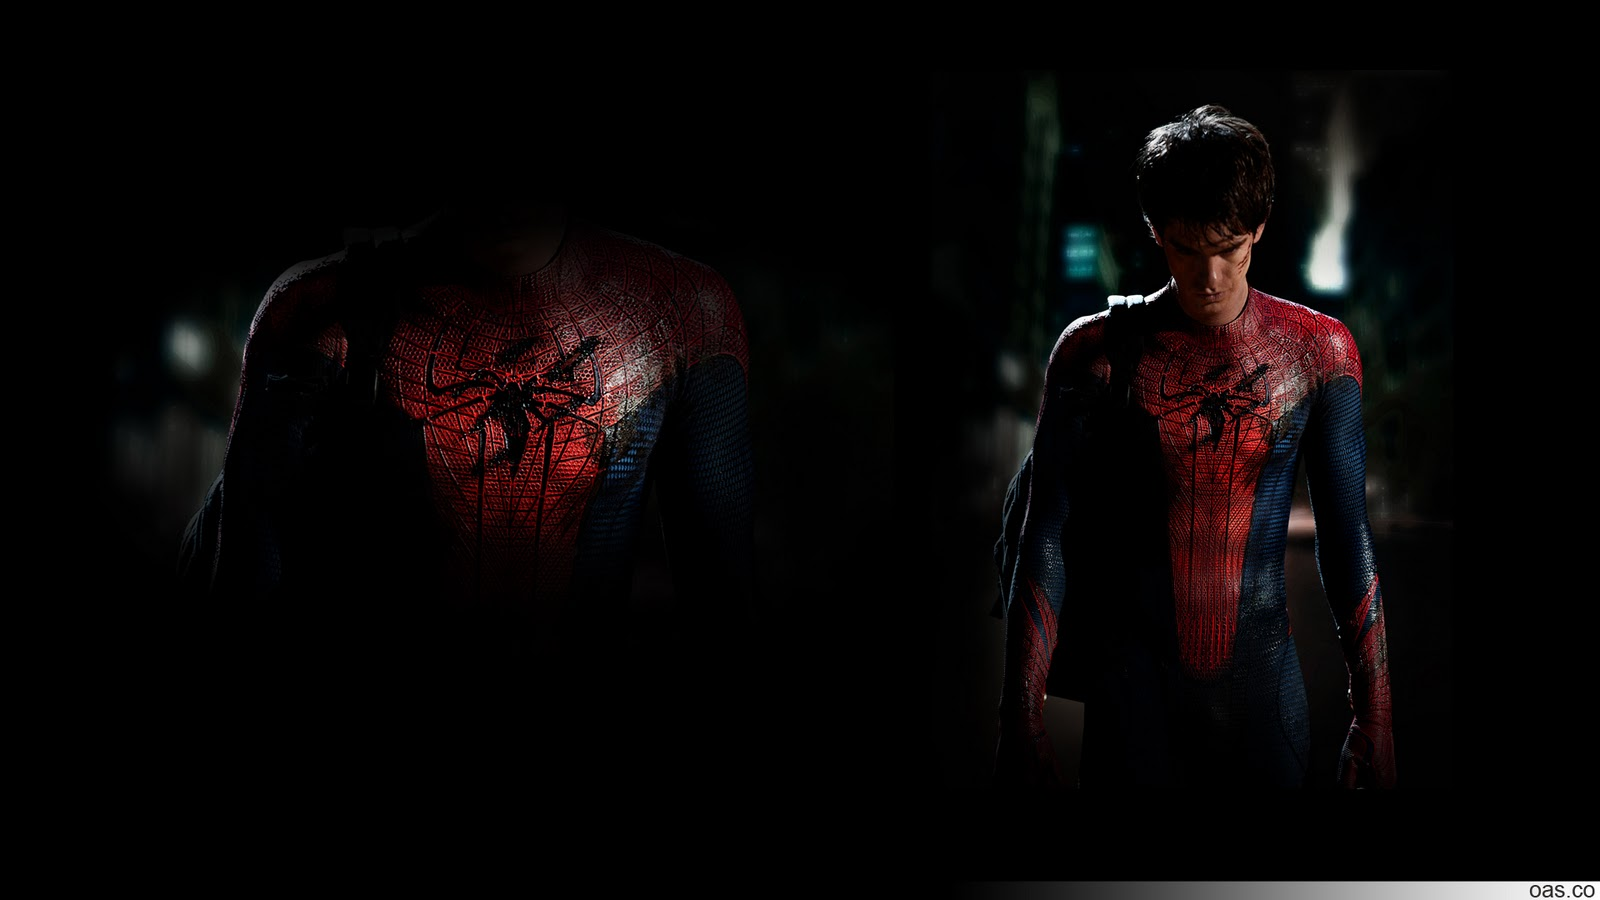 The Amazing Spider-Man (2012 Film)Hot Photos Of Actress